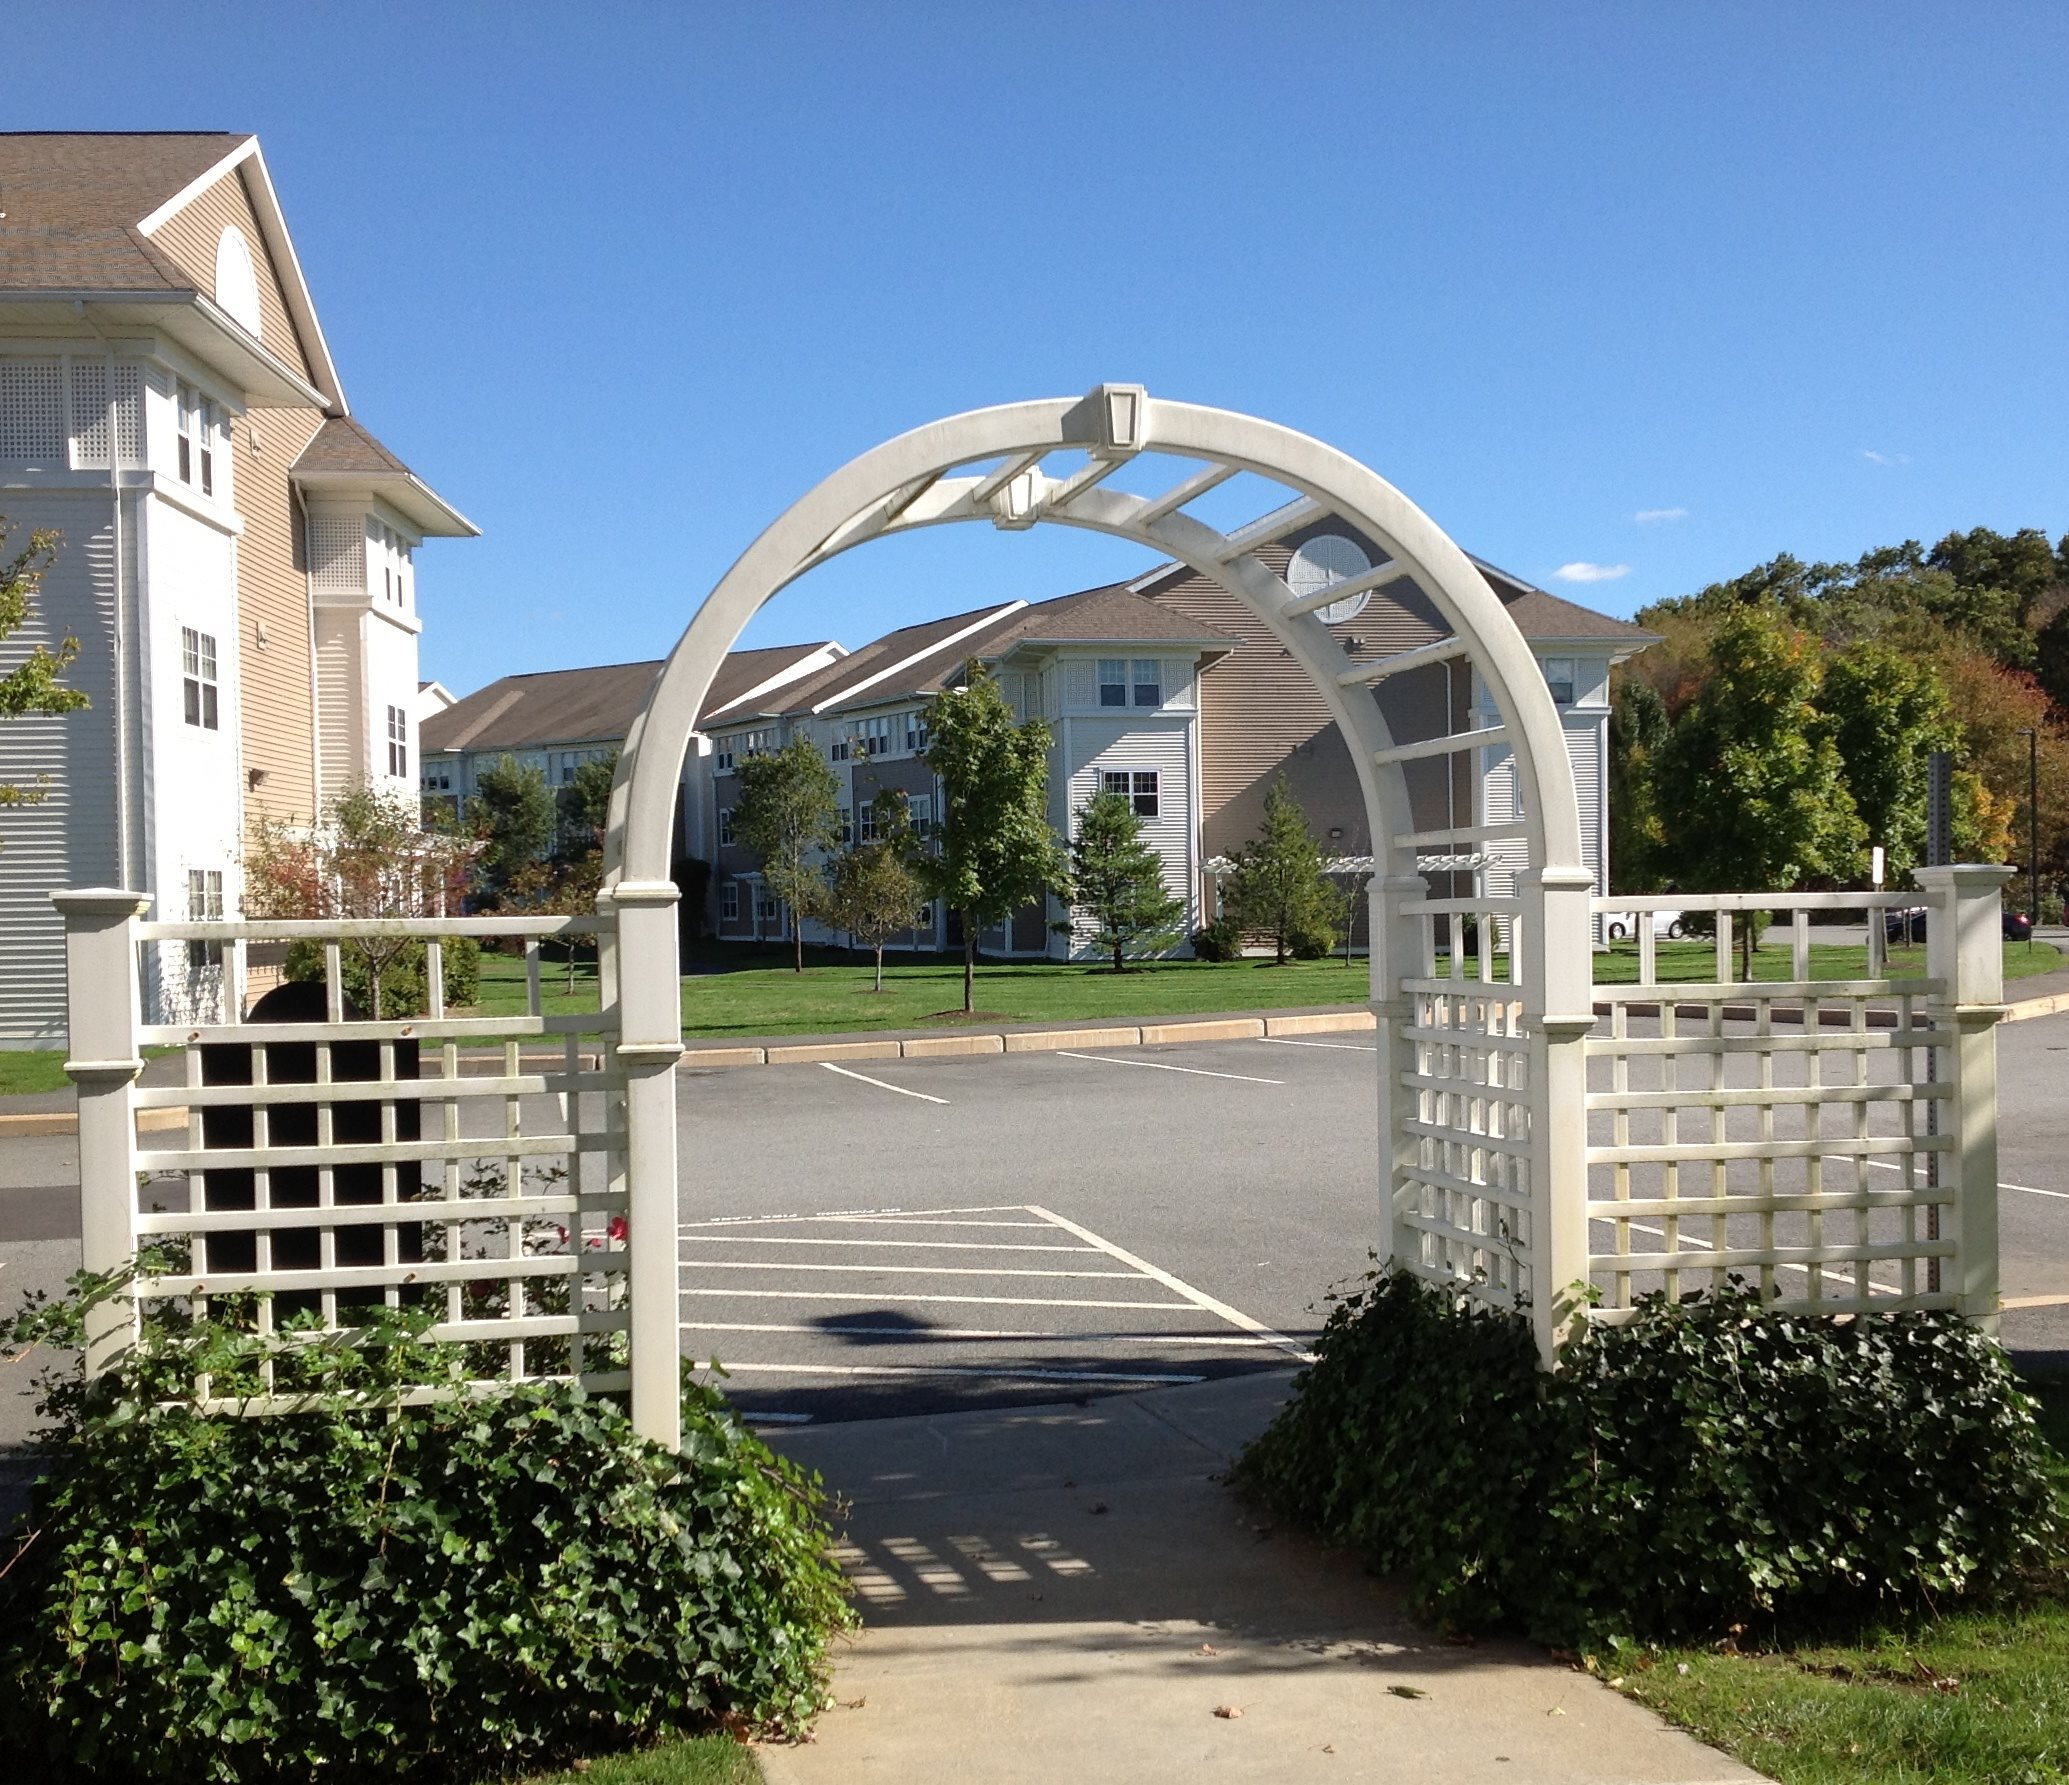 Arch at Property Entrance at Chestnut Farm Apartments in Raynham, MA 02767